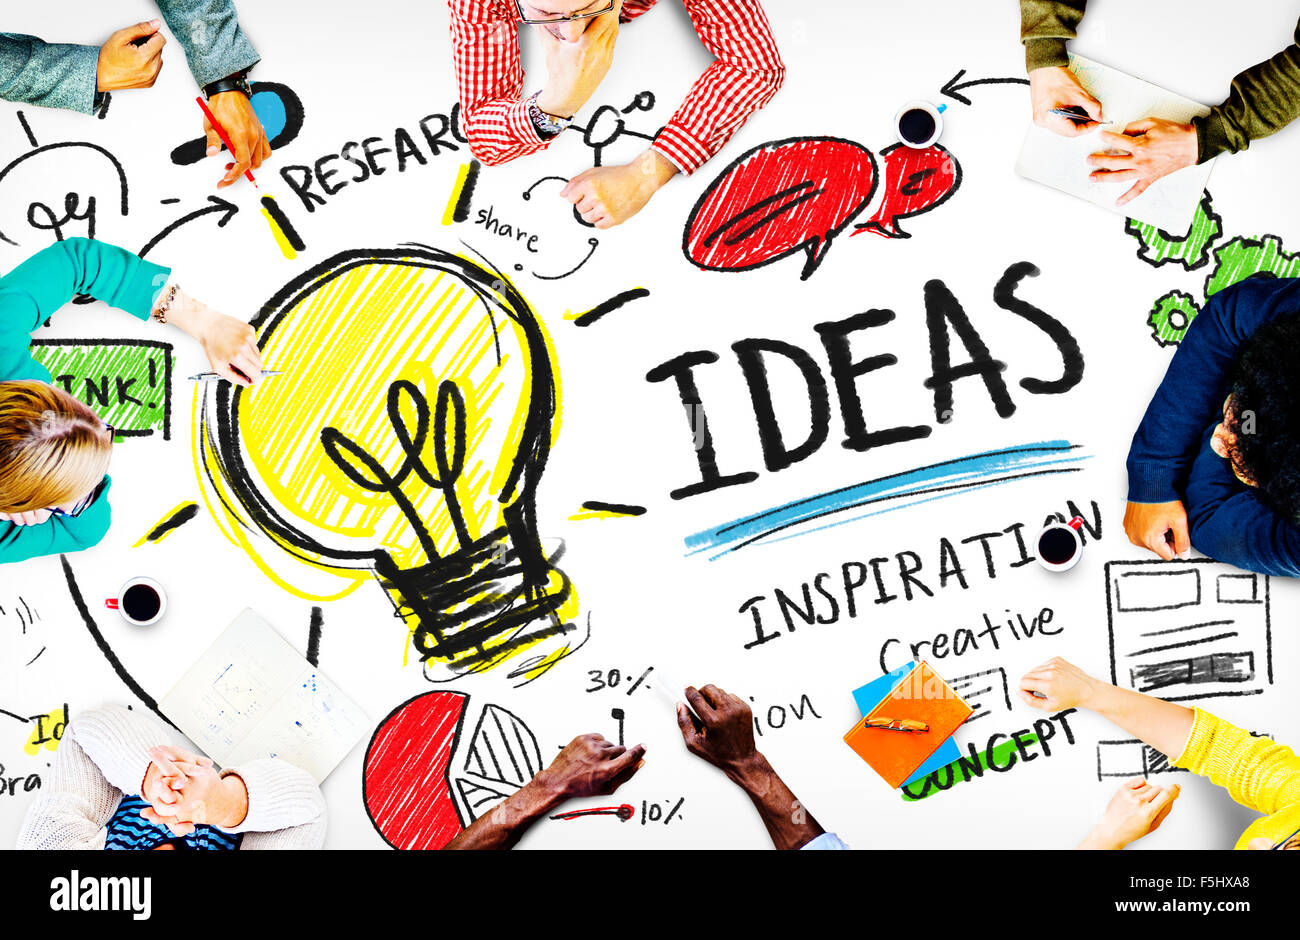 innovation creativity design Innovation & design we are an open, evolving community invested in creating, preserving, and translating knowledge our faculty and students play an increasingly large role in engaging in innovation and entrepreneurship activities.